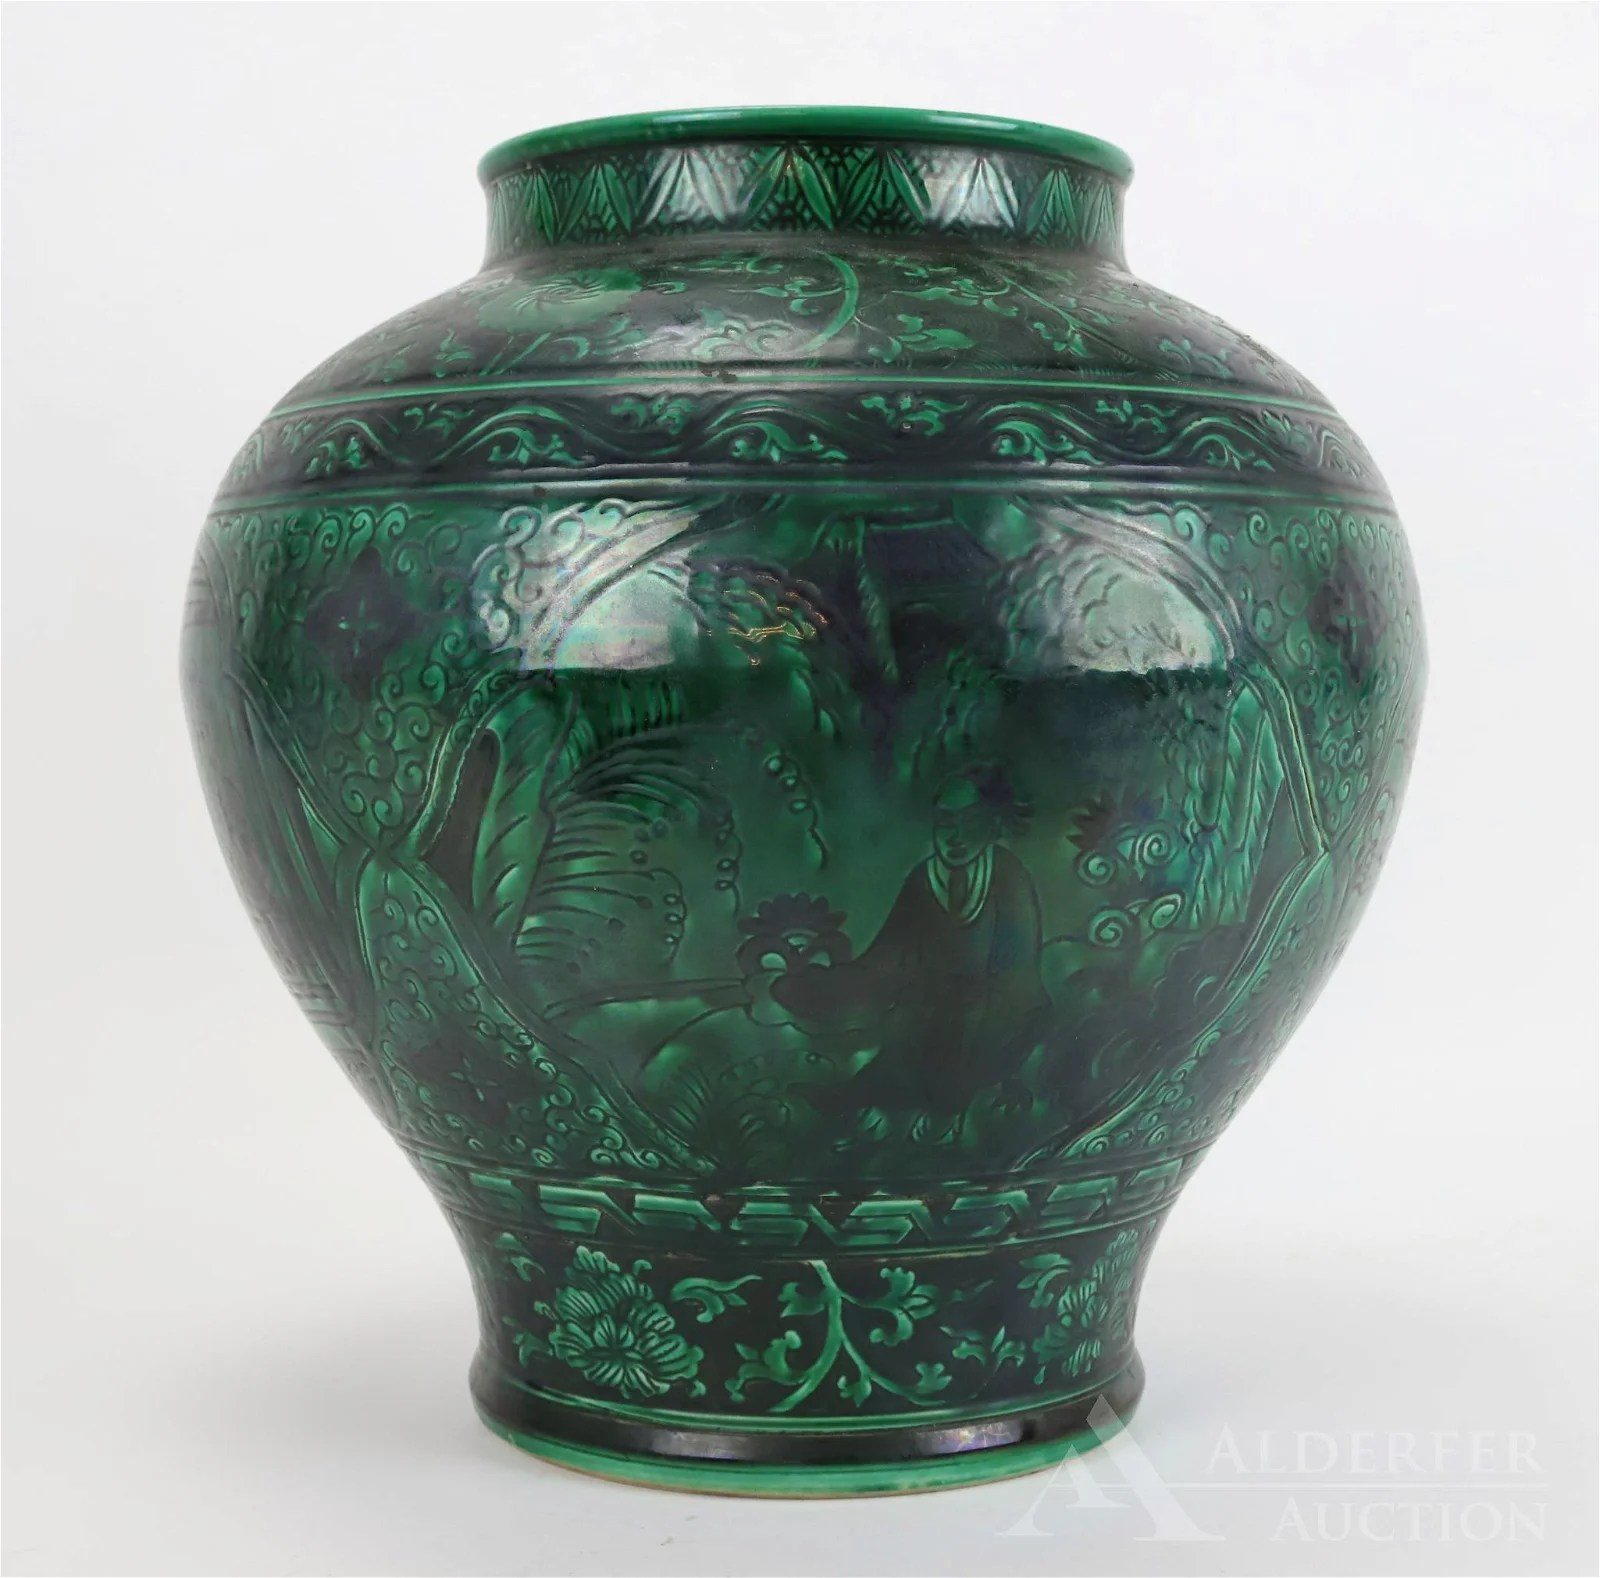 Green Glazed Chinese Jar